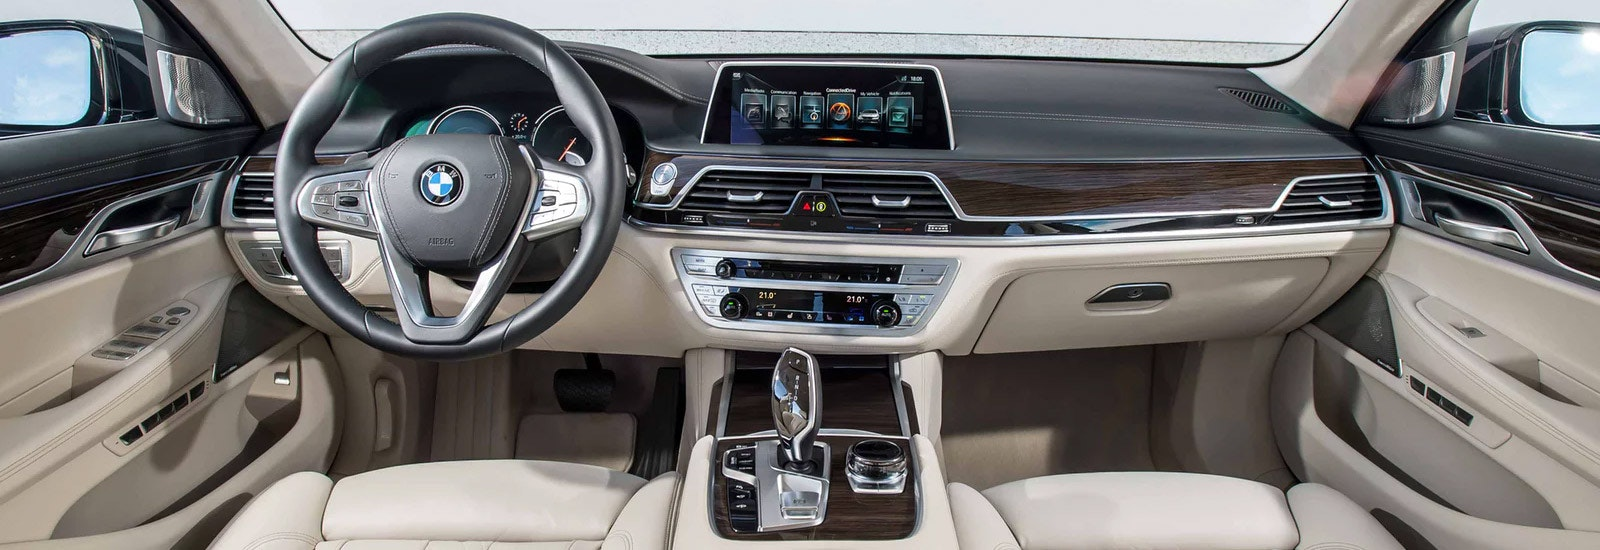 2018 Bmw 7 Series Price Specs Release Date Carwow